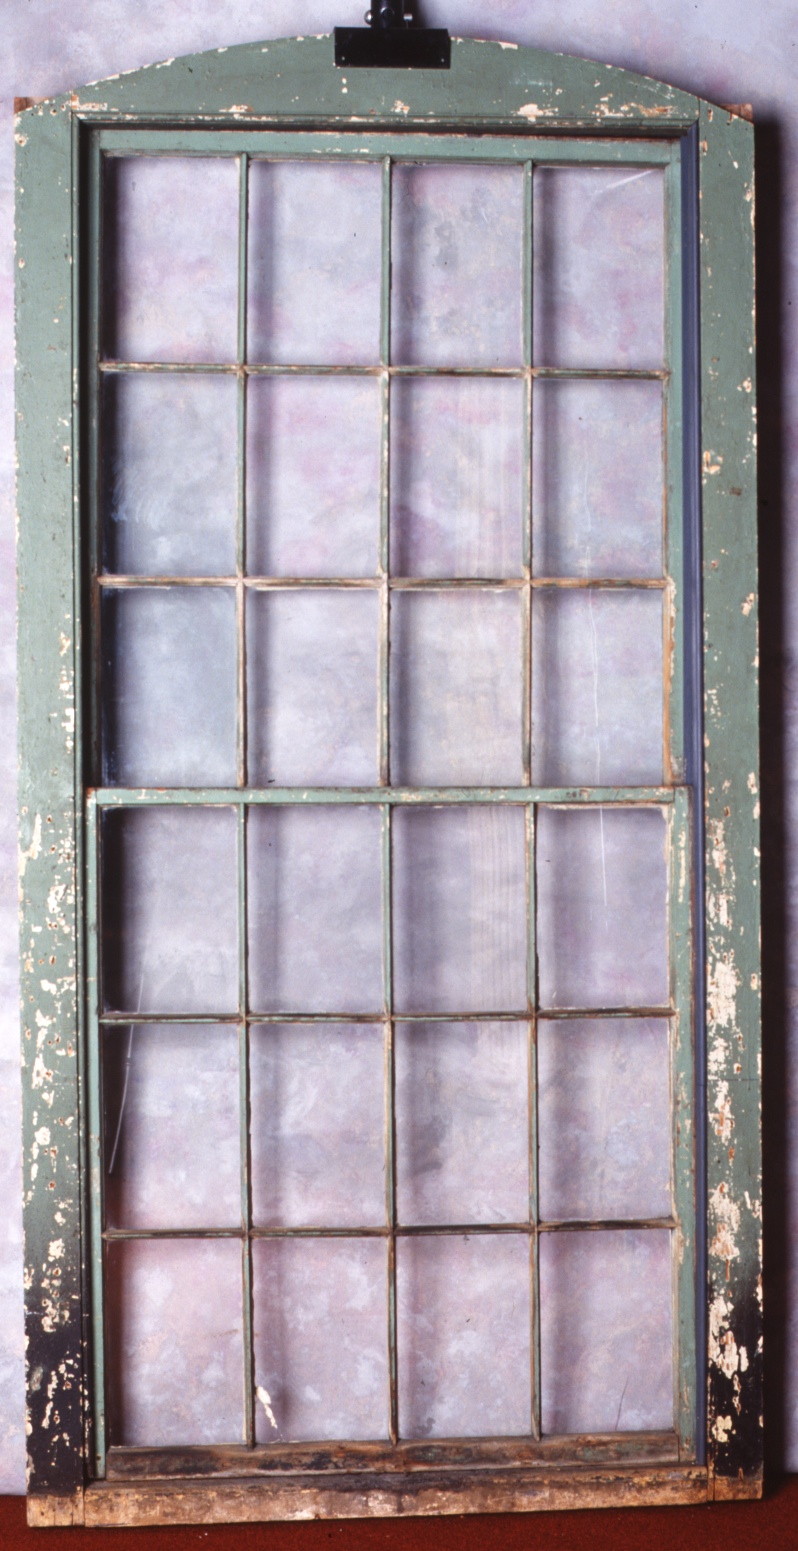 1870-industrial-window3